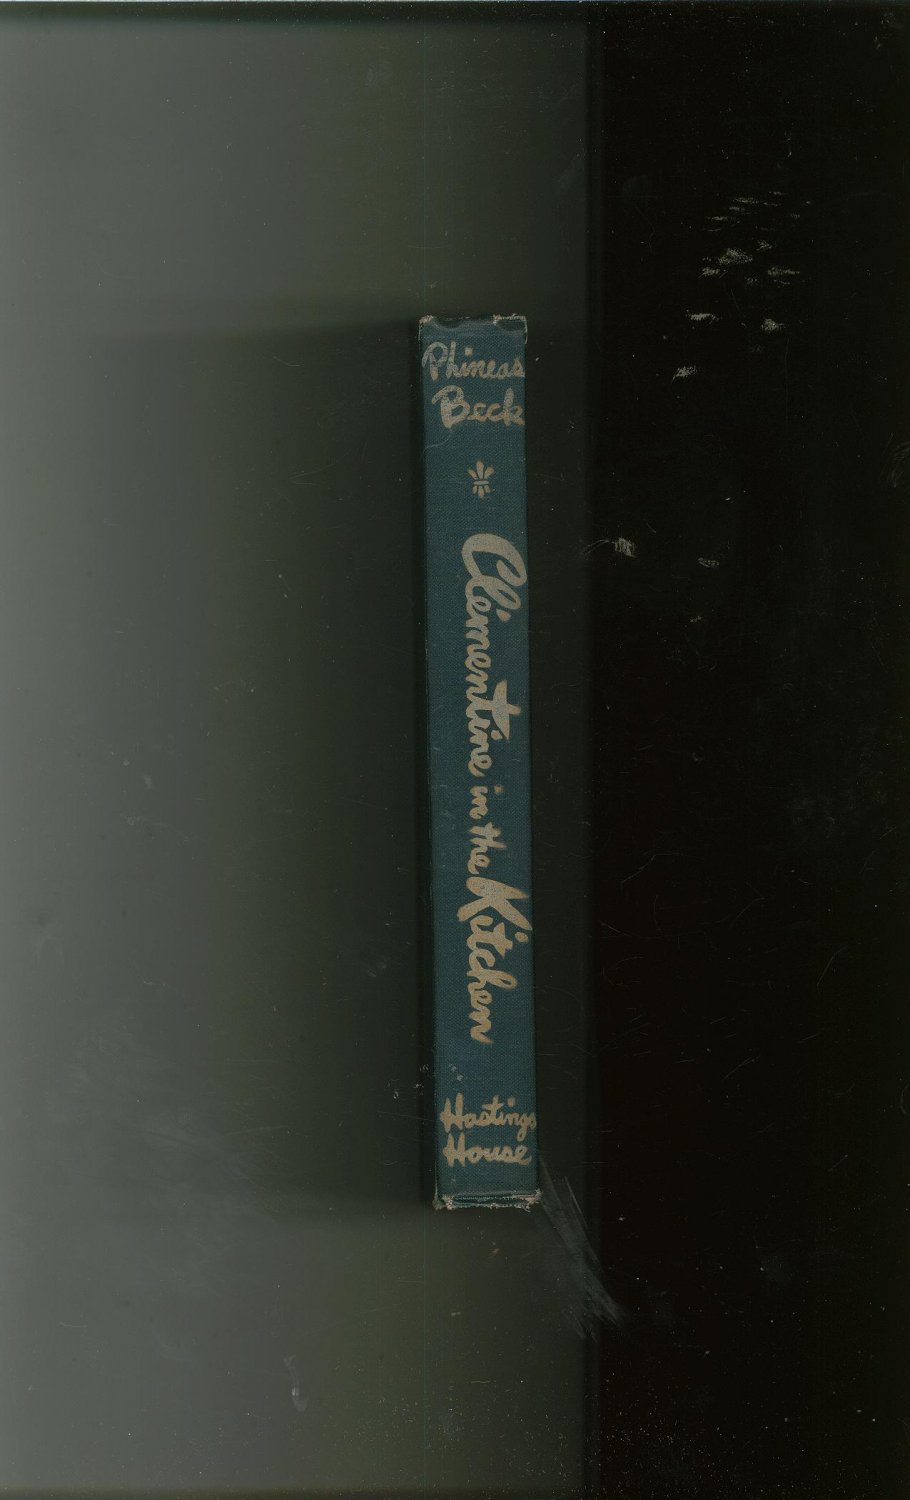 Vintage Clementine In The Kitchen Cookbook Phineas Beck Hastings House 1943 1946